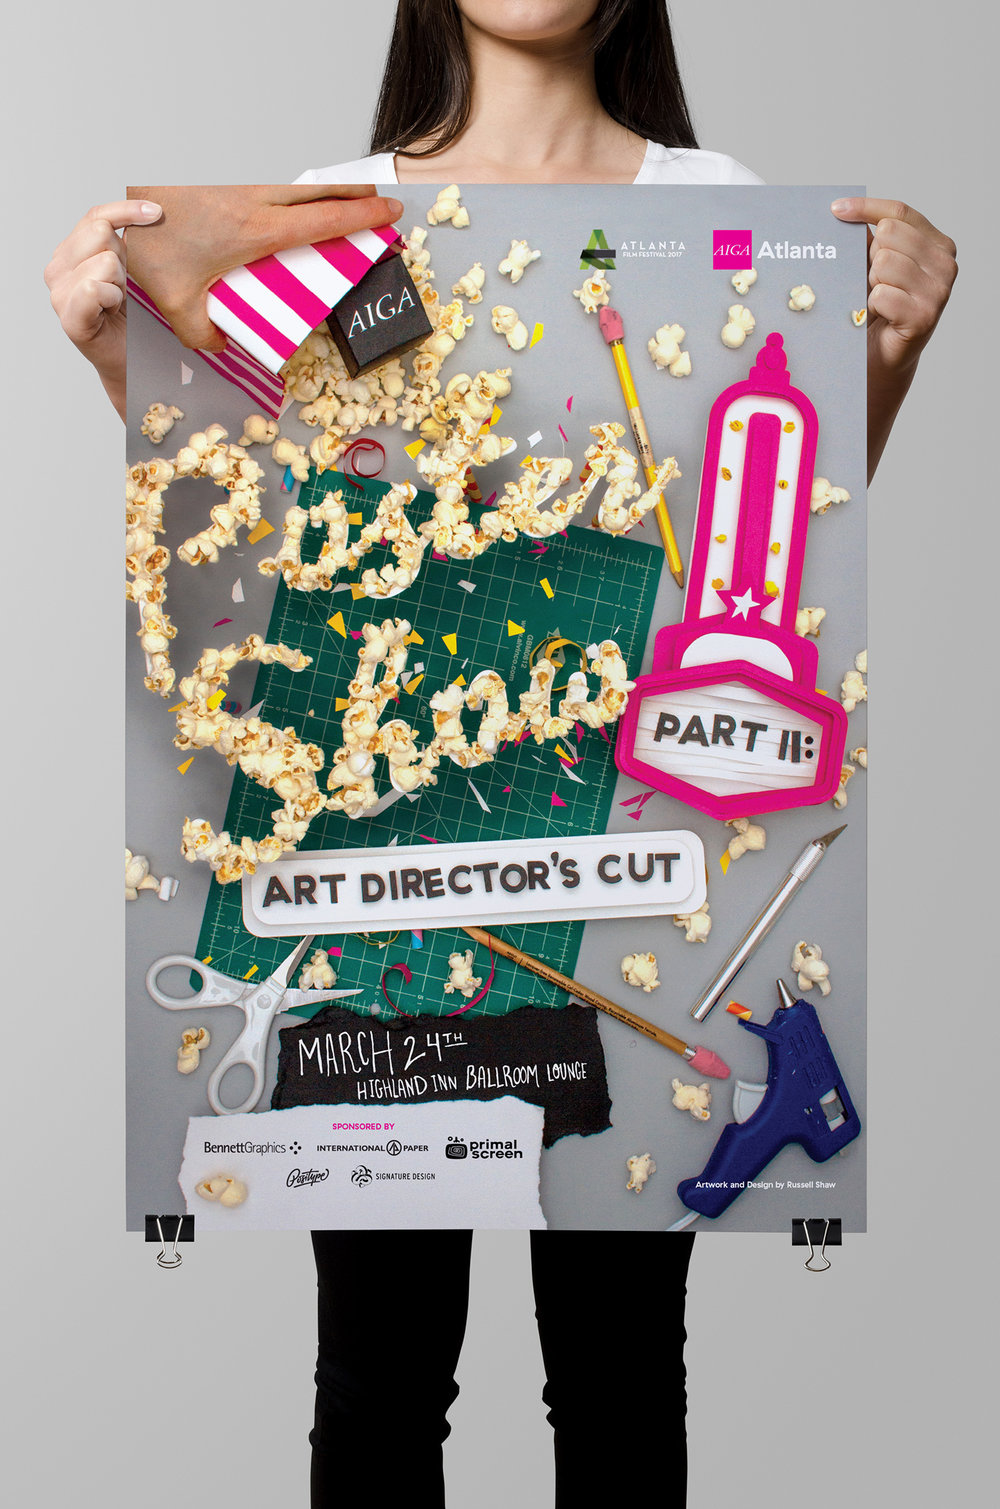 Call for entries and official fundraiser branding for Poster Show Part II: Art Director's Cut shown on a large format poster by graphic artist Russell Shaw for AIGA Atlanta.